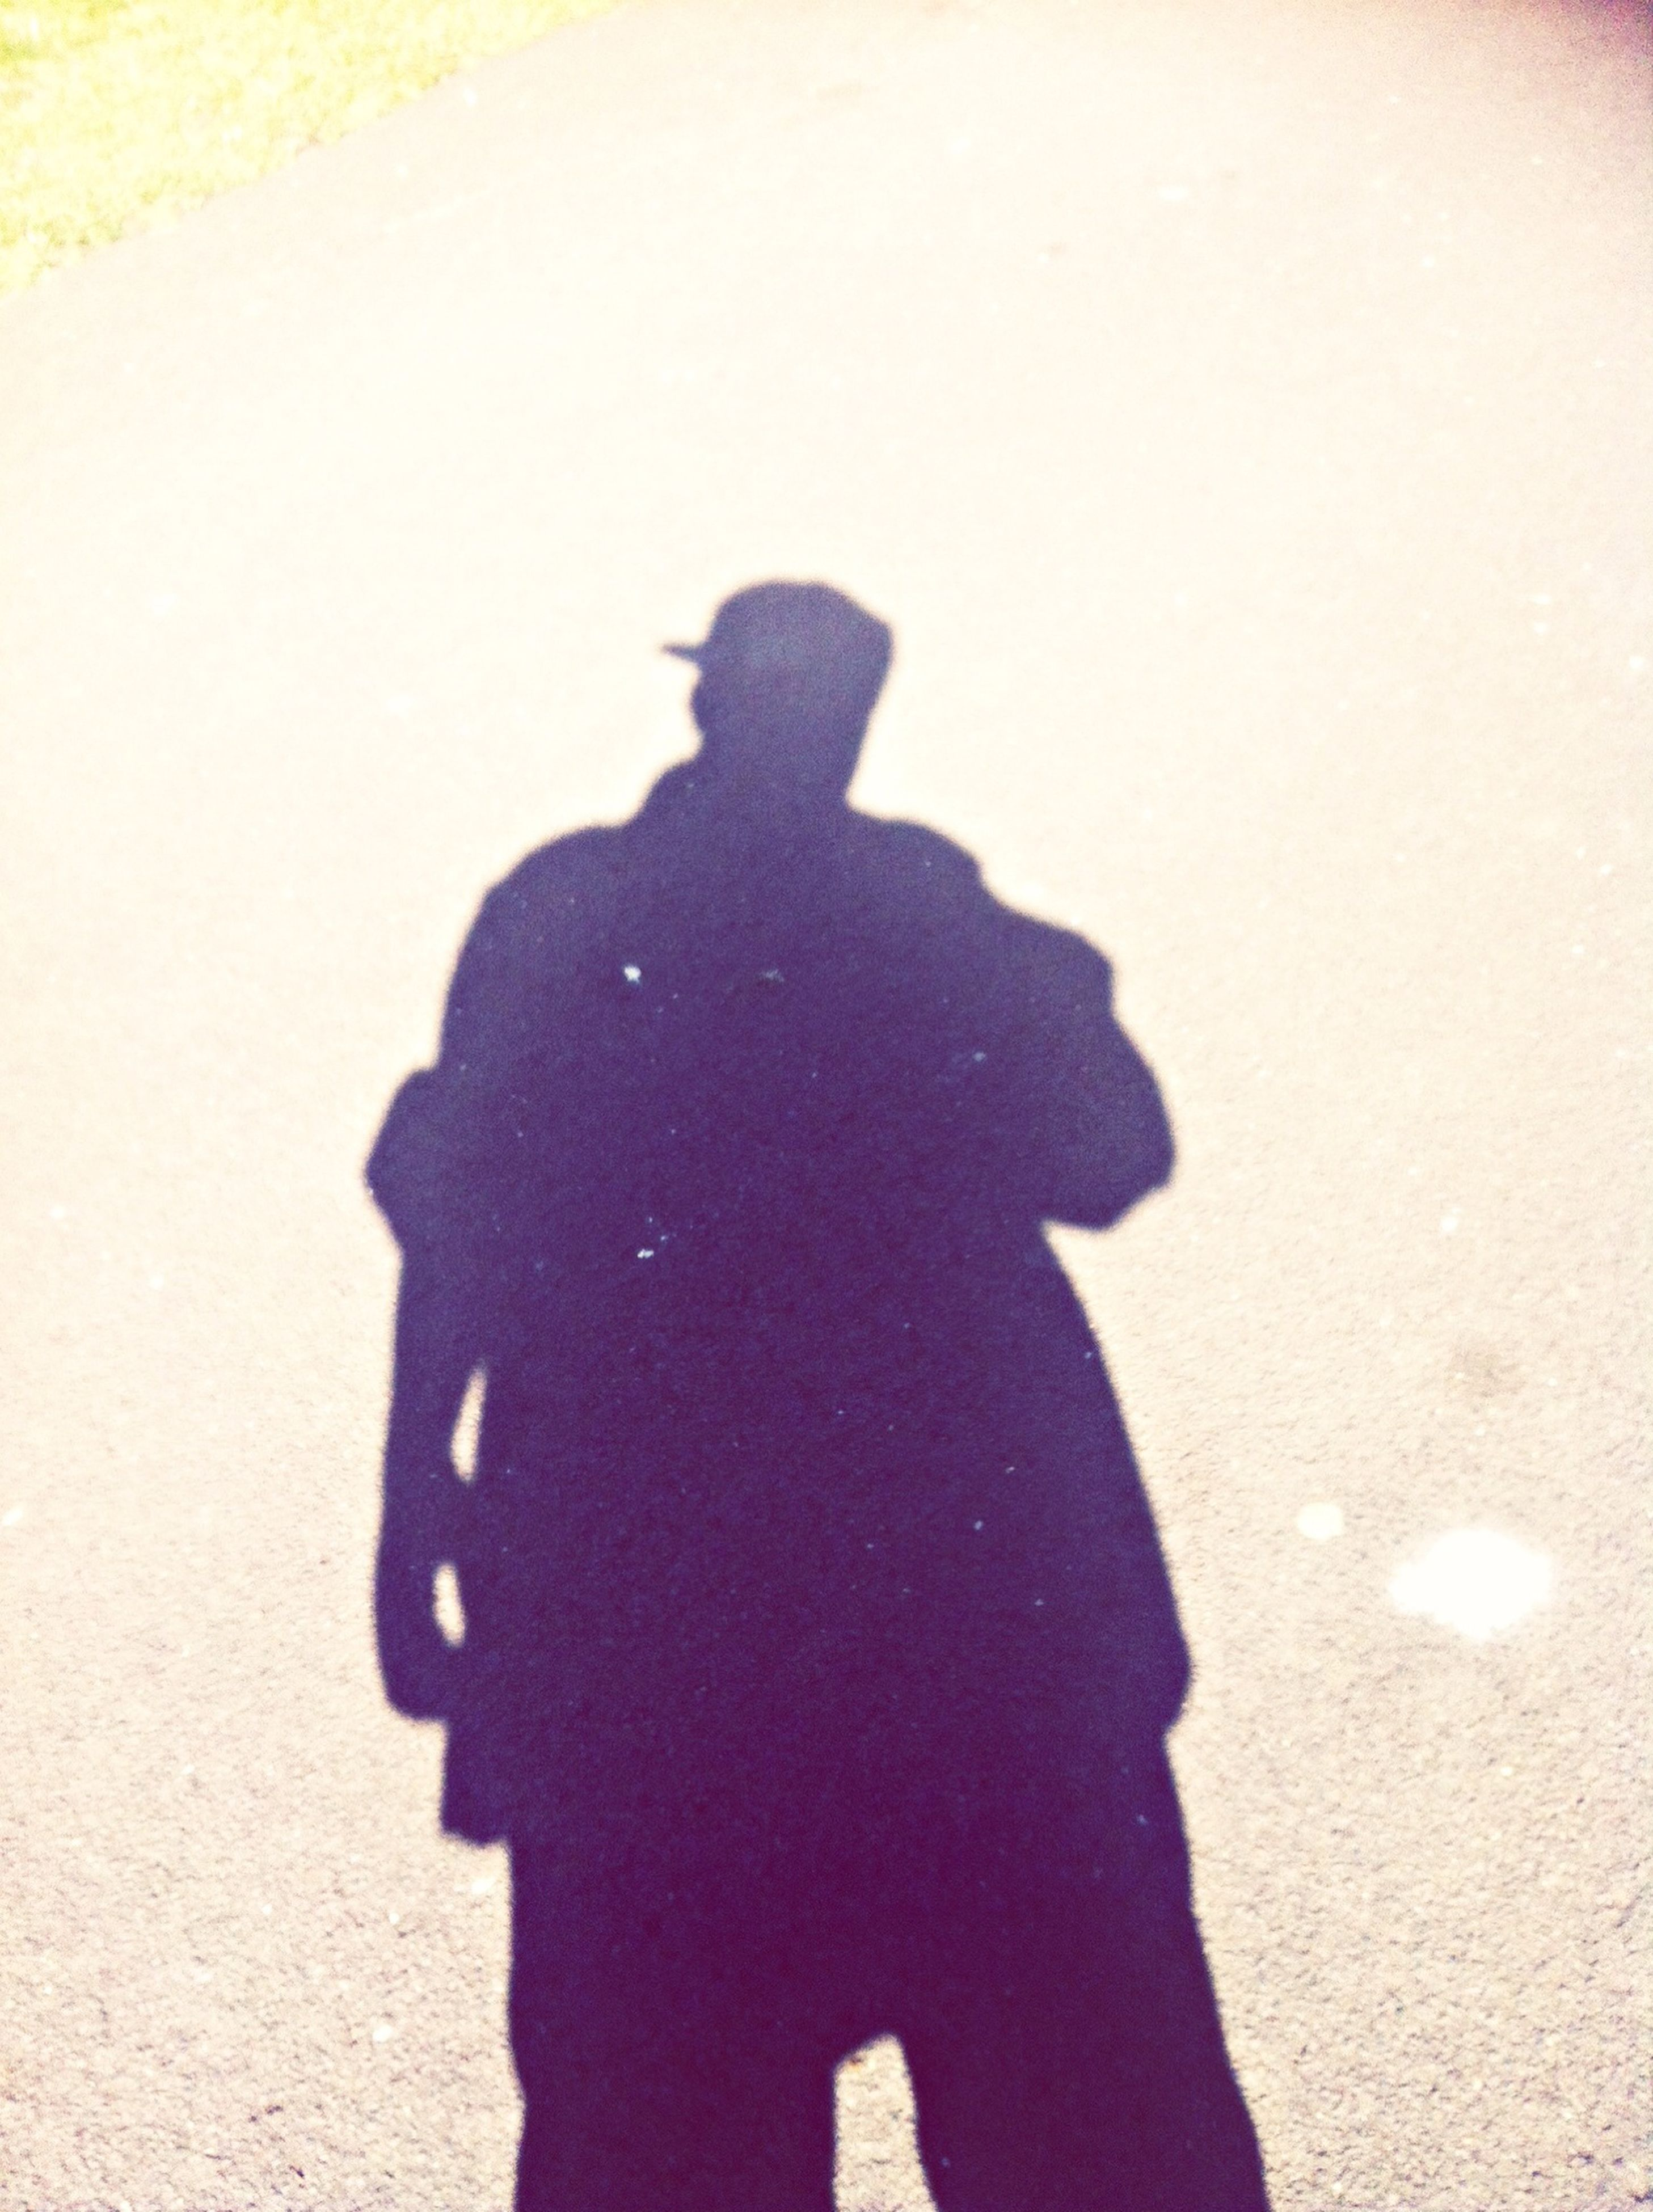 shadow, men, lifestyles, street, leisure activity, focus on shadow, silhouette, standing, sunlight, unrecognizable person, holding, road, three quarter length, high angle view, outdoors, day, person